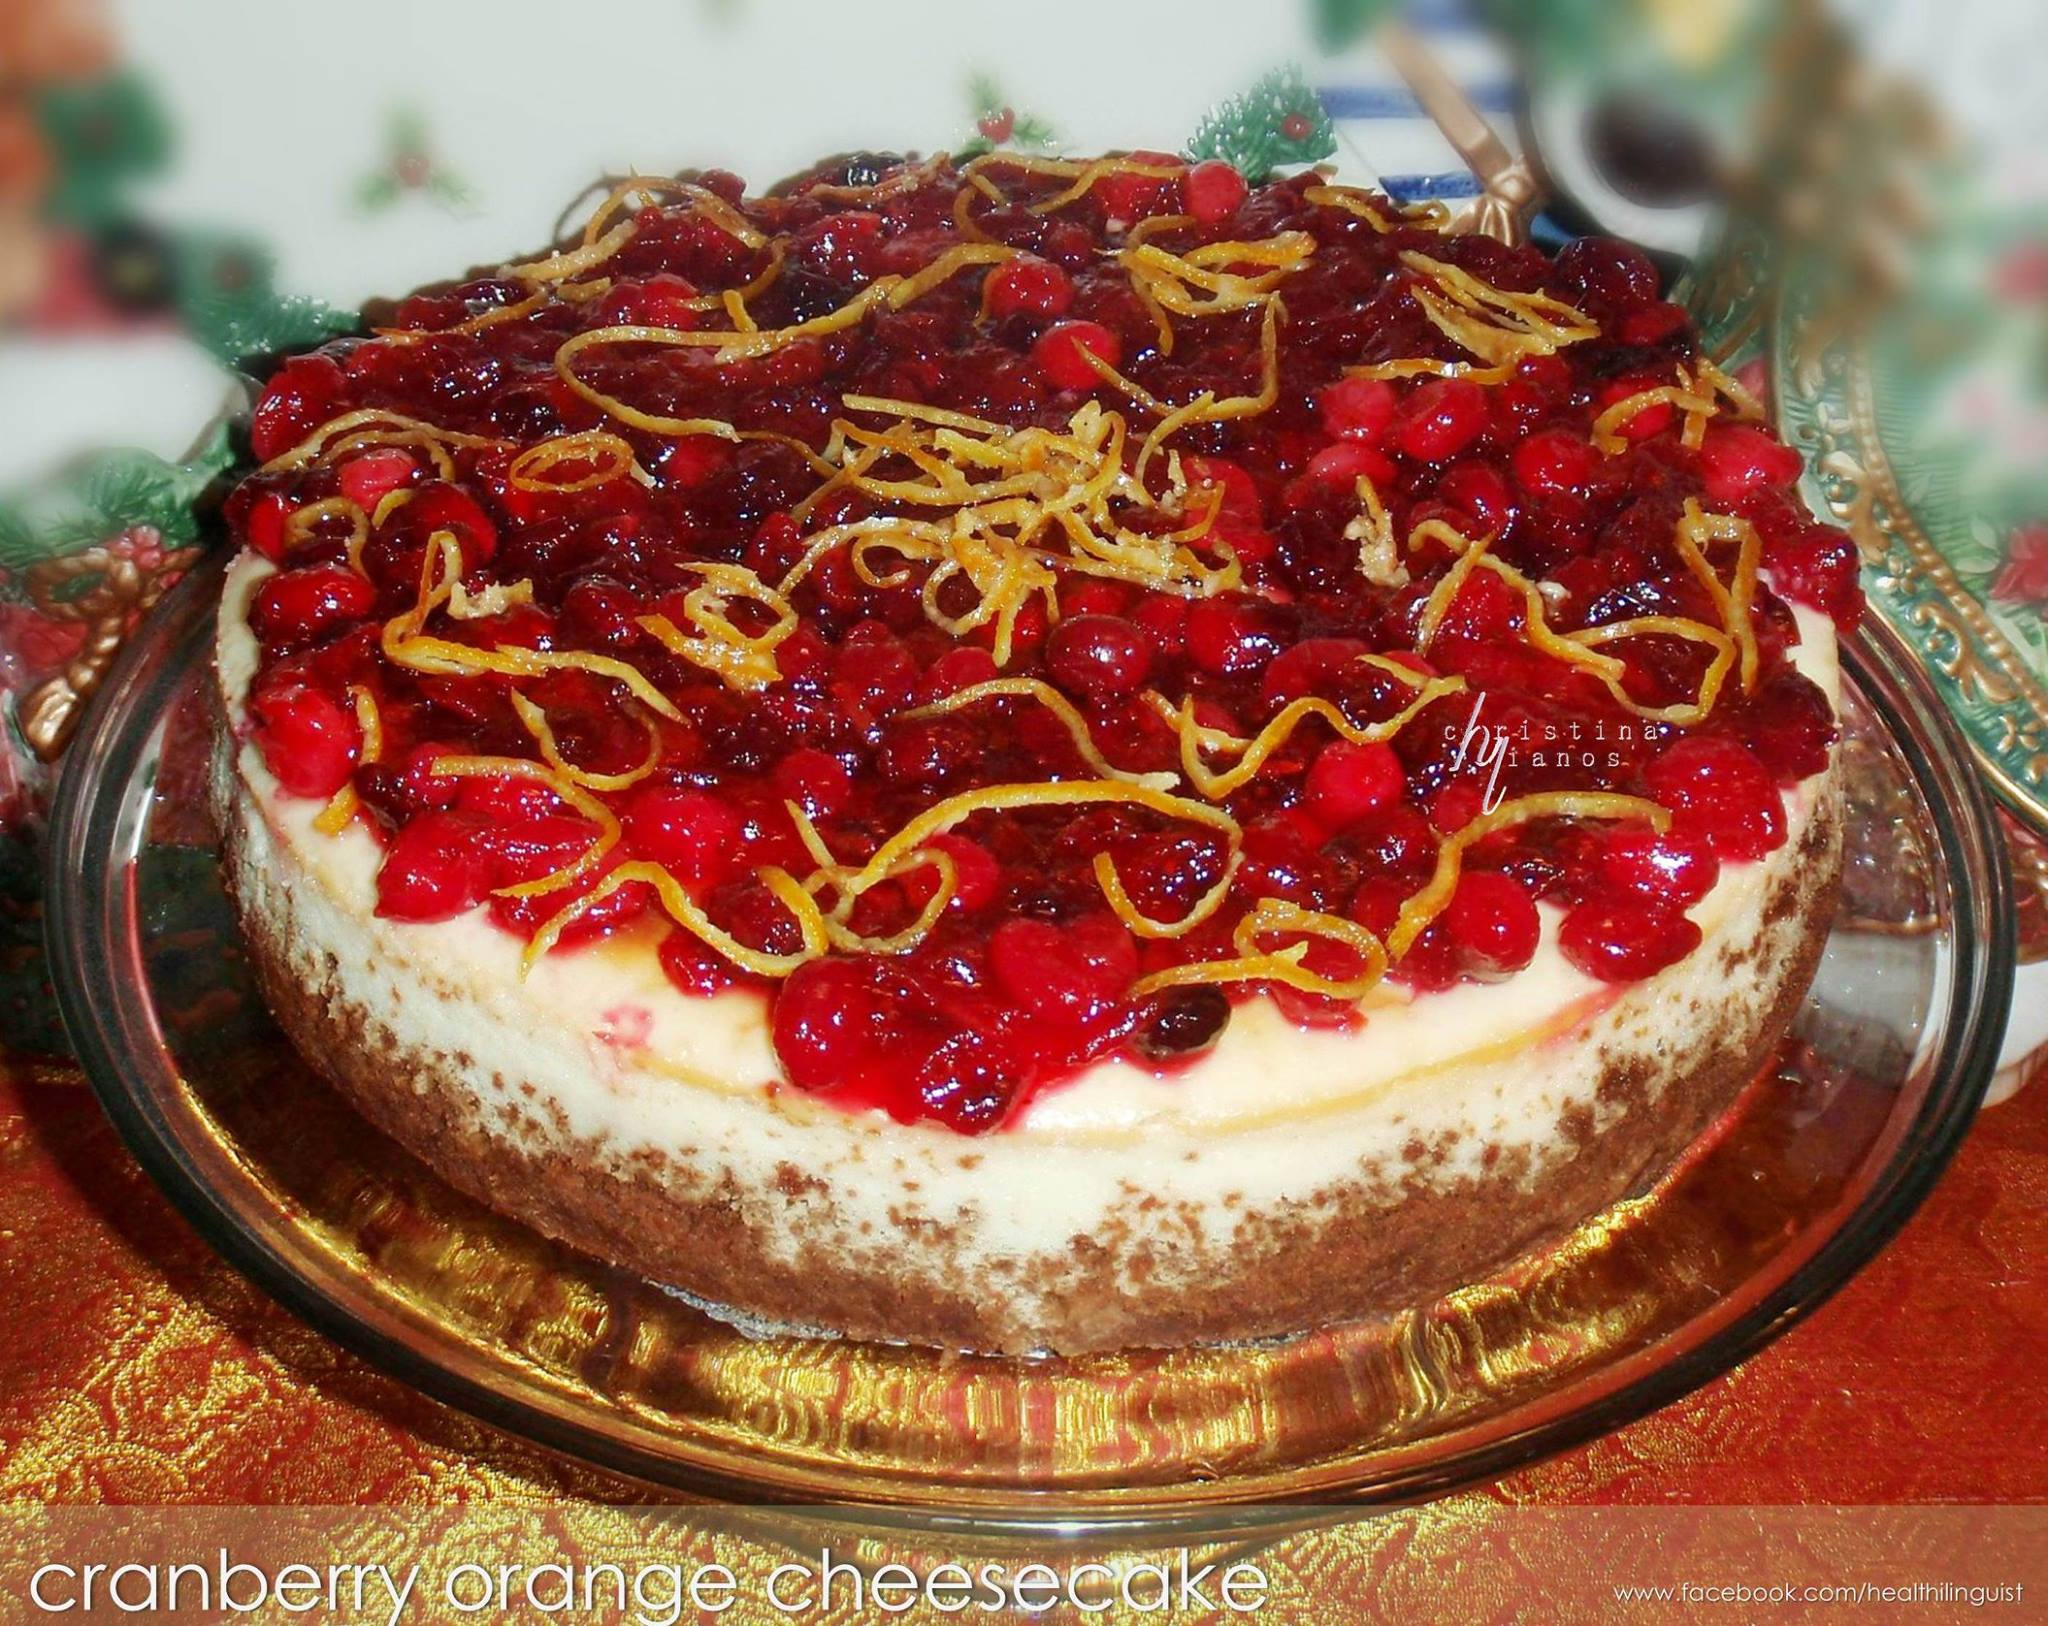 Cranberry Orange Cheesecake (Gluten Free, Grain Free)